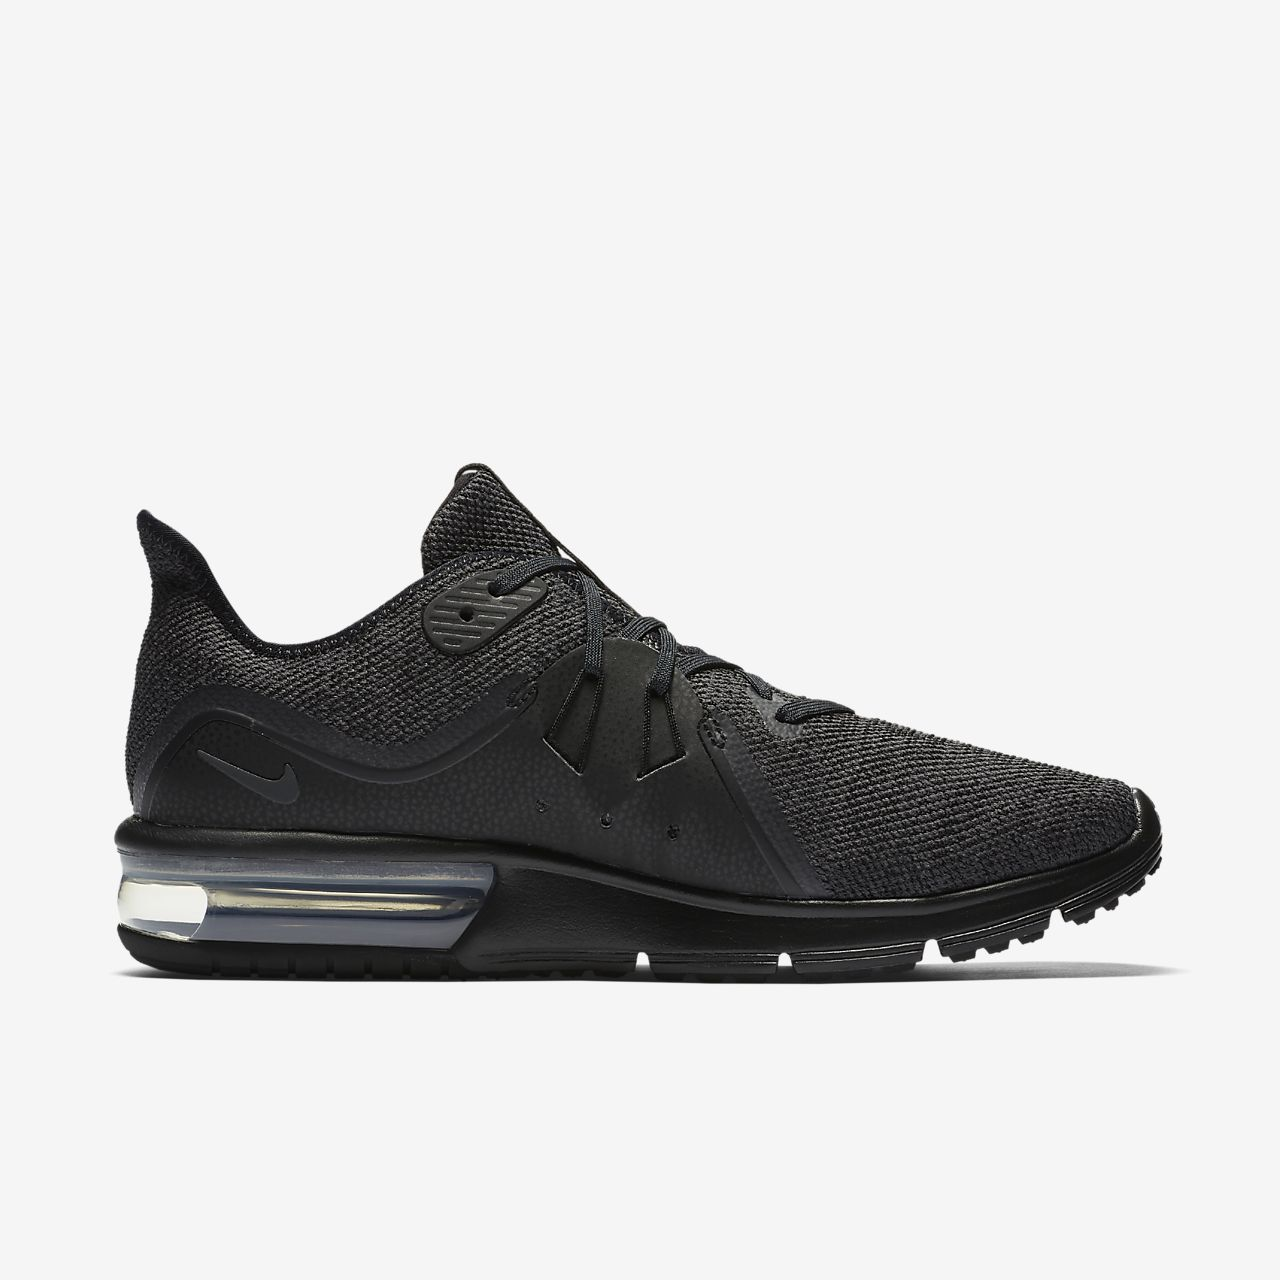 f3c55b627519ce Nike Air Max Sequent 3 Men s Shoe. Nike.com AU